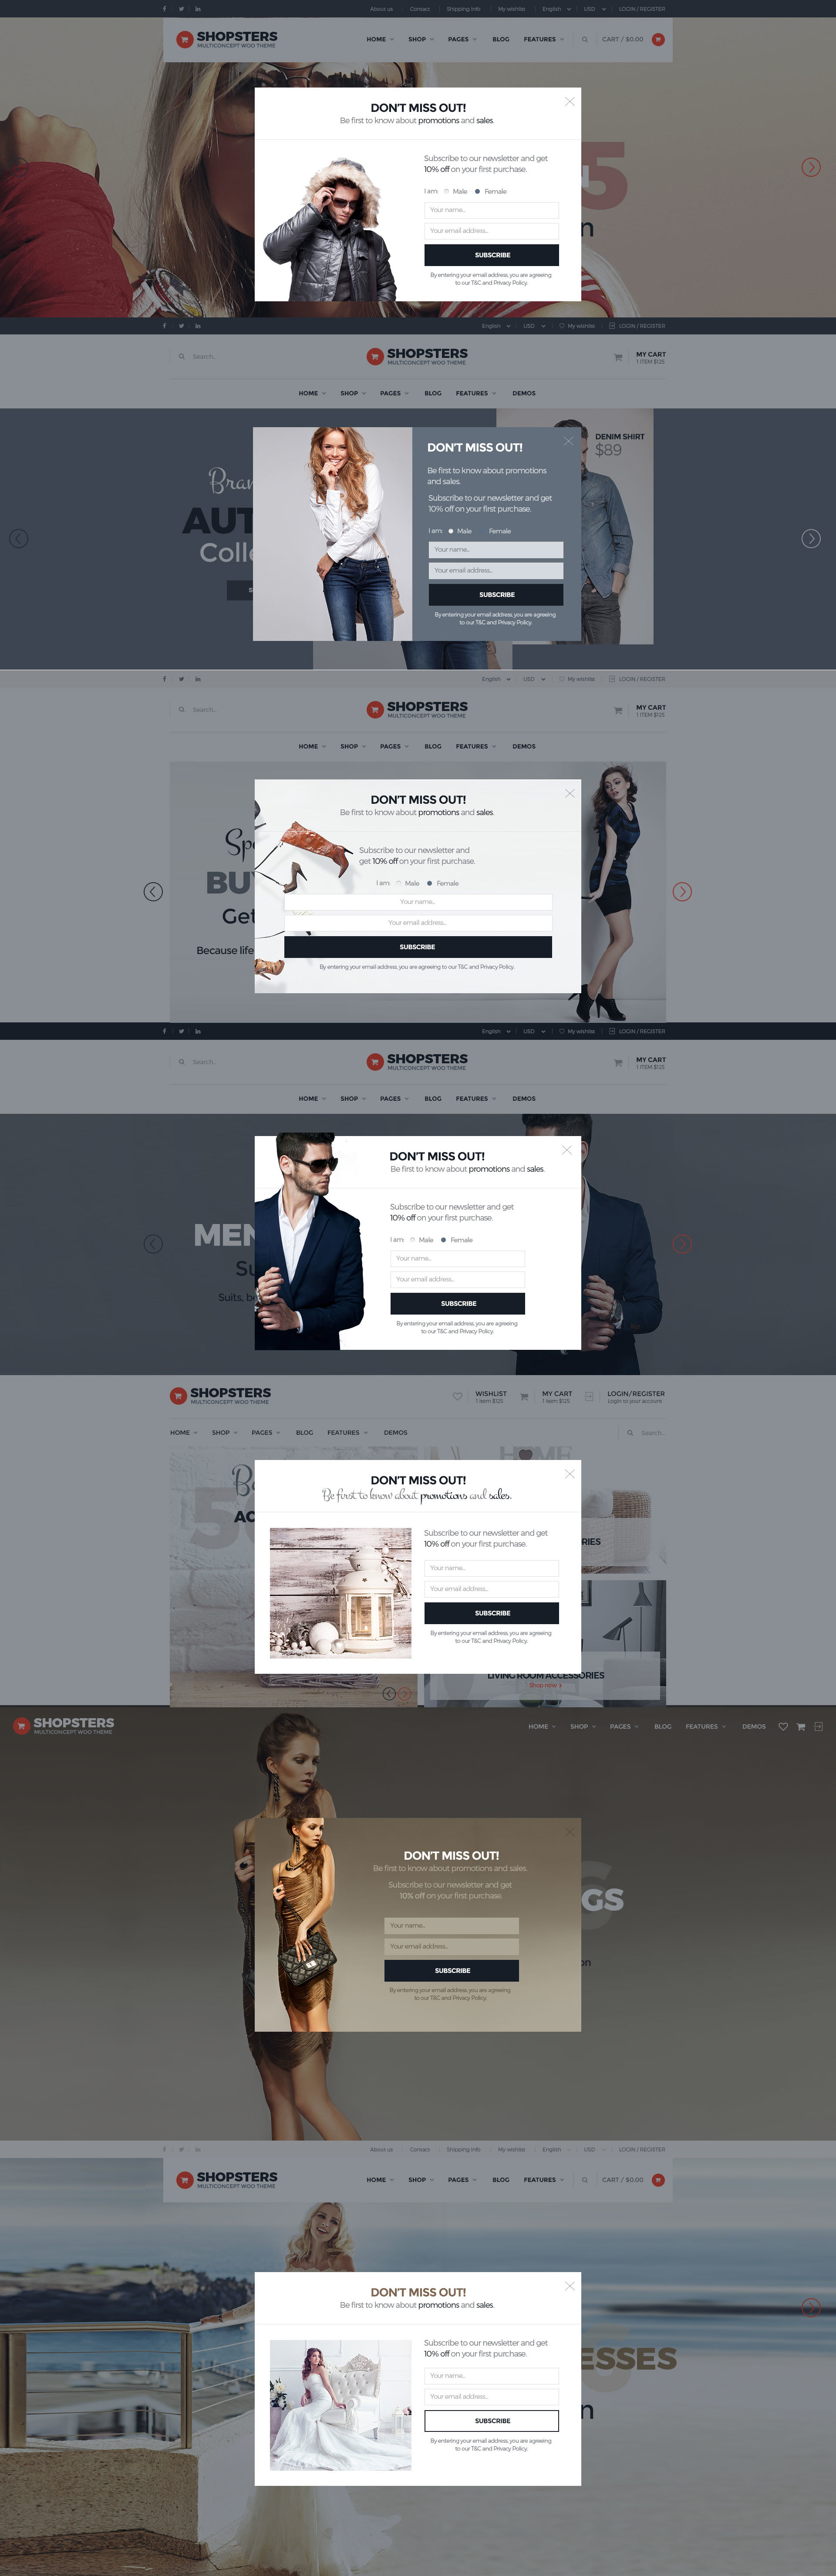 Shopsters - Multiconcept E-commerce PSD Template by pixel-industry